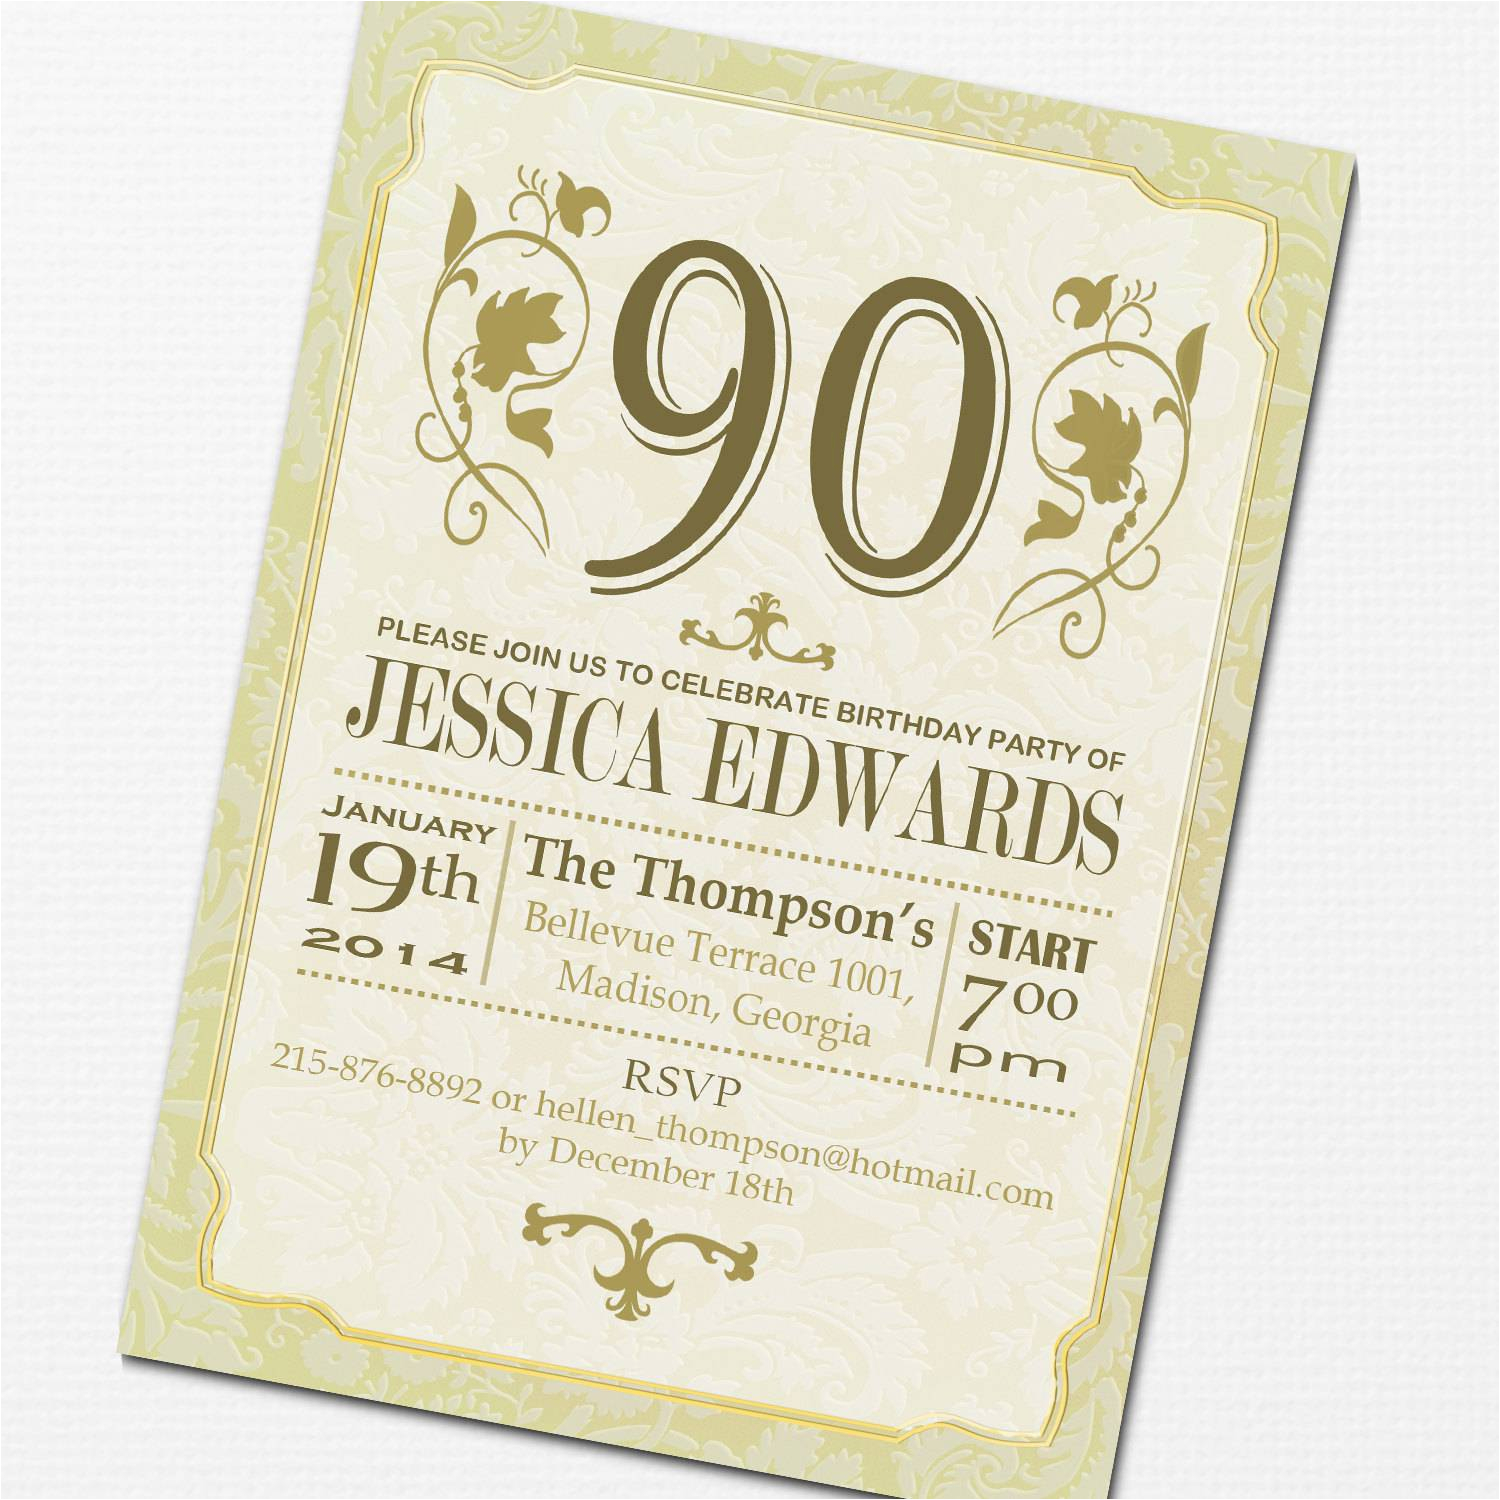 Invitations For 90th Birthday Party Templates